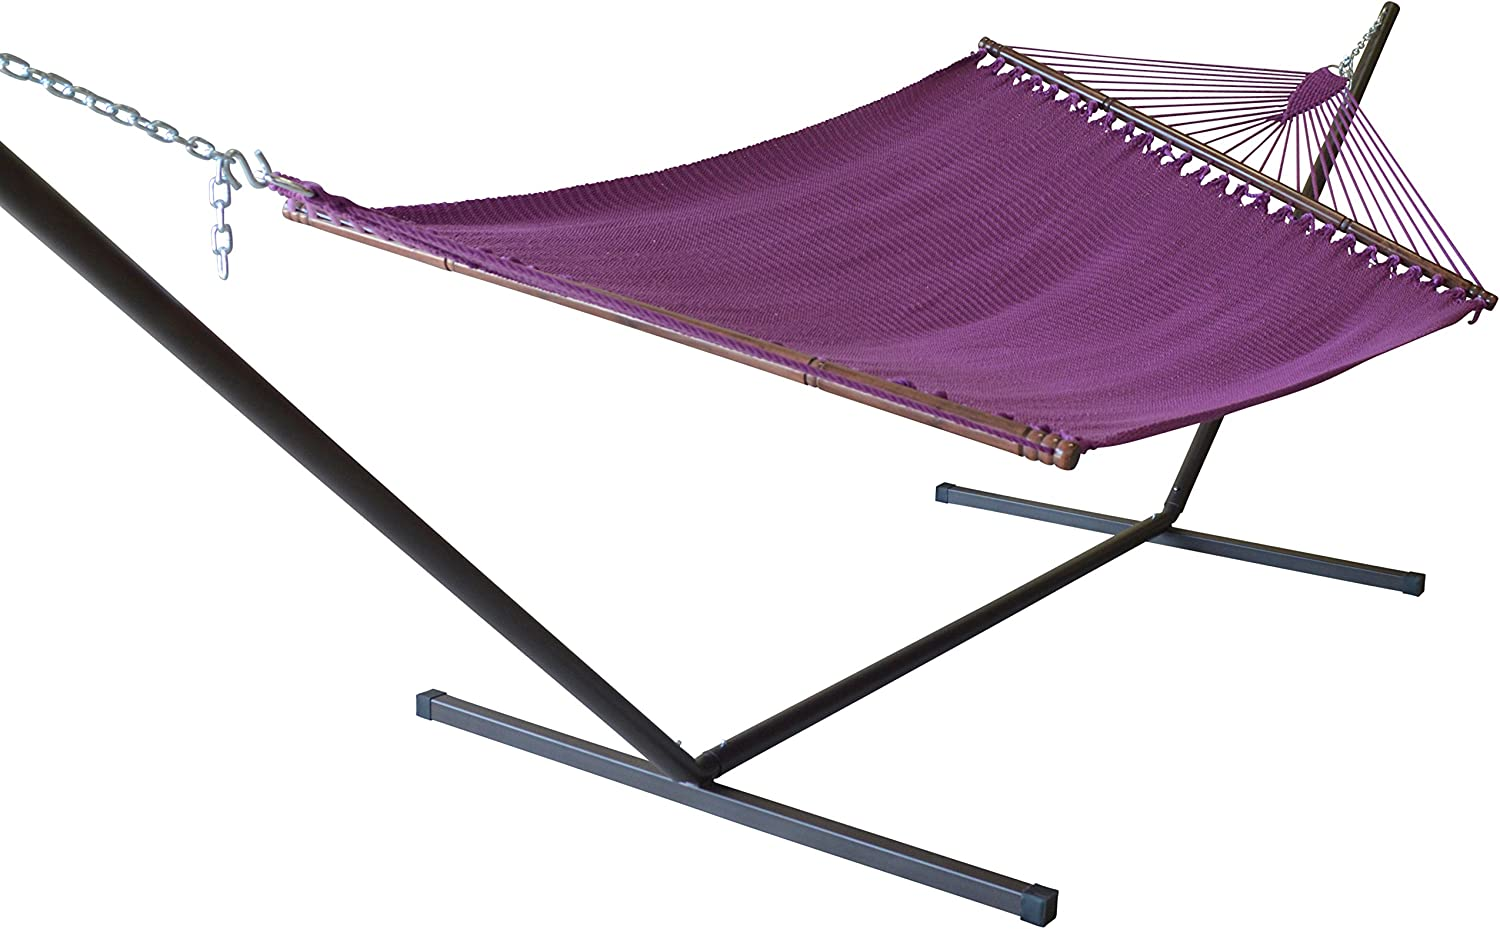 Caribbean Hammocks Jumbo Hammock and 15 ft Tribeam Stand - Purple